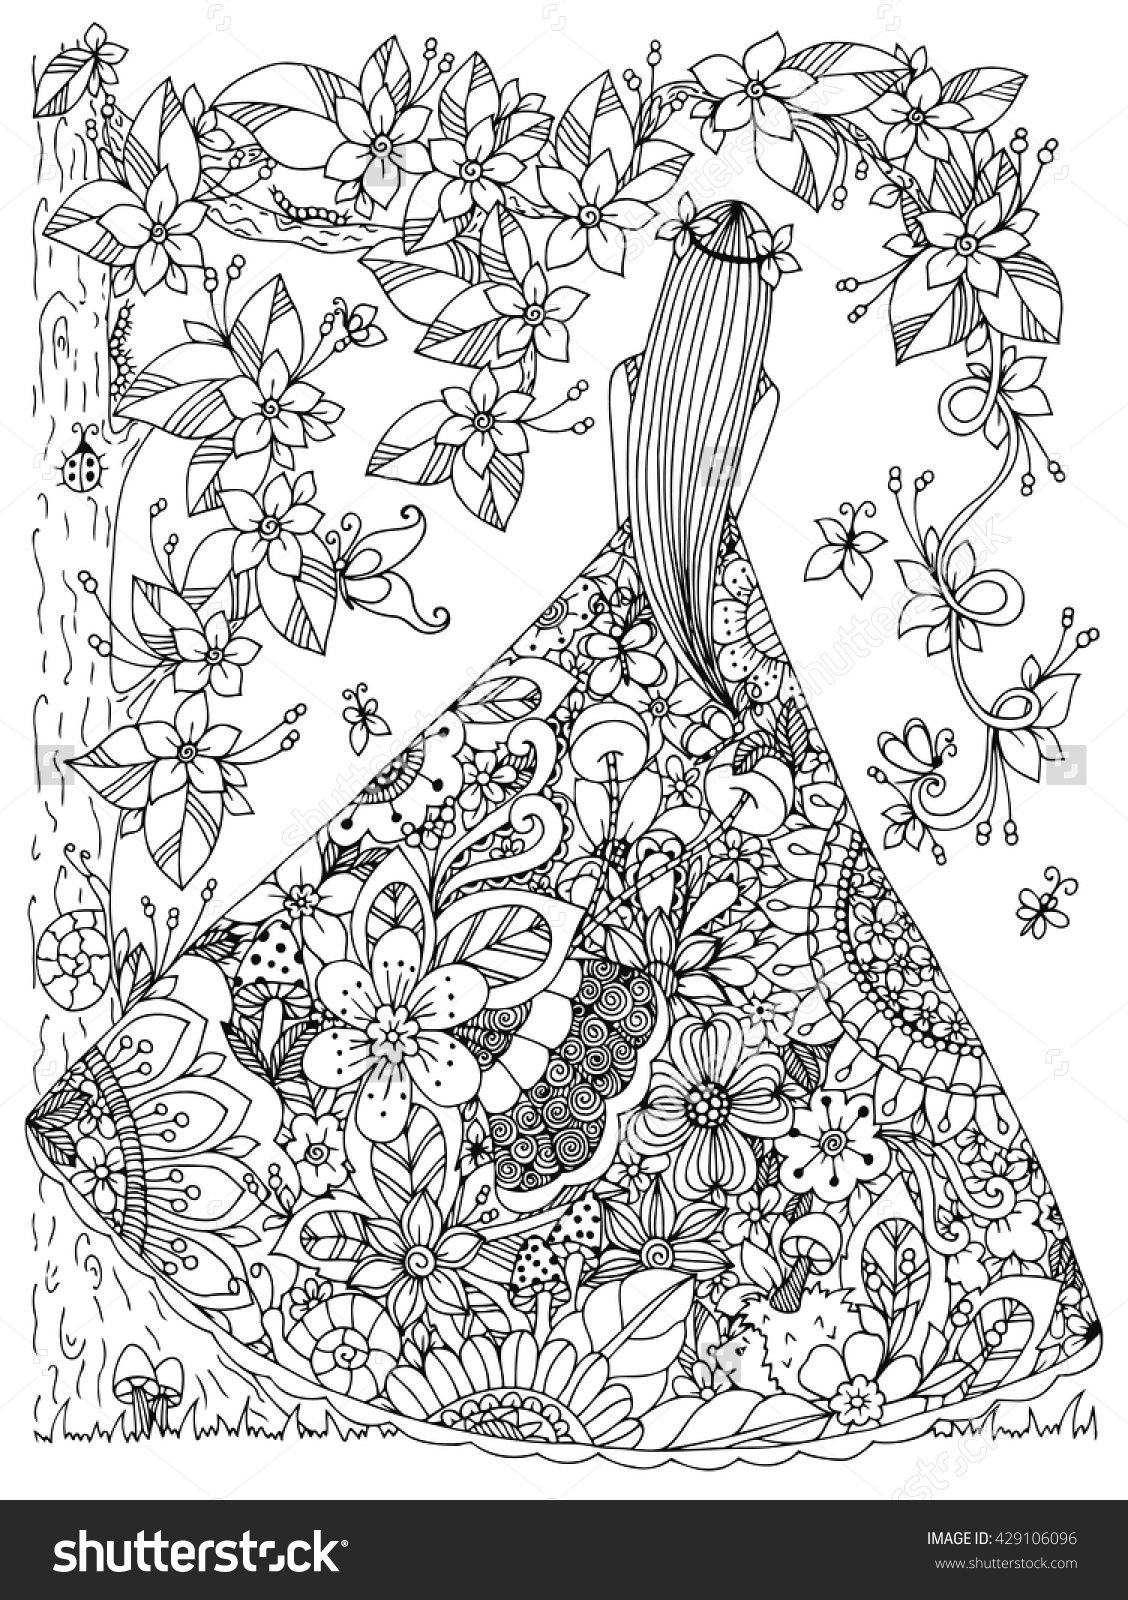 Coloring pages trees and flowers - Girl In A Floral Dress Doodle Flowers Tree Zen Coloring Page